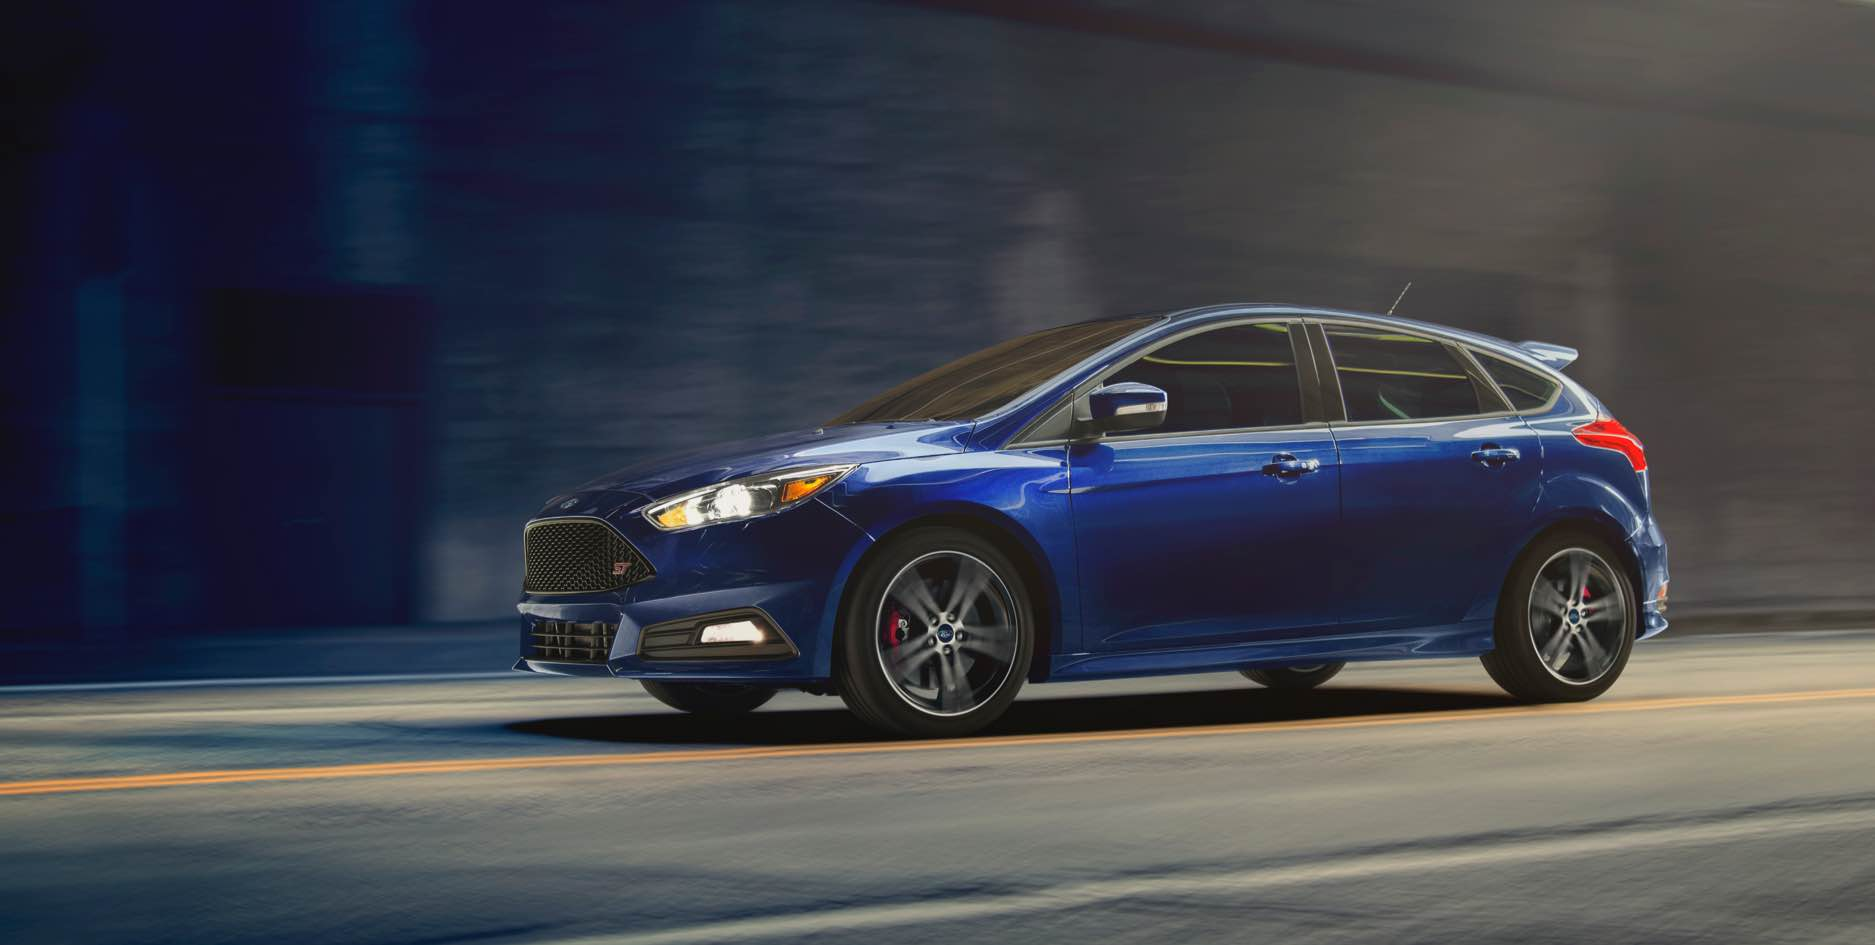 2017 ford focus st blue exterior side view jpg